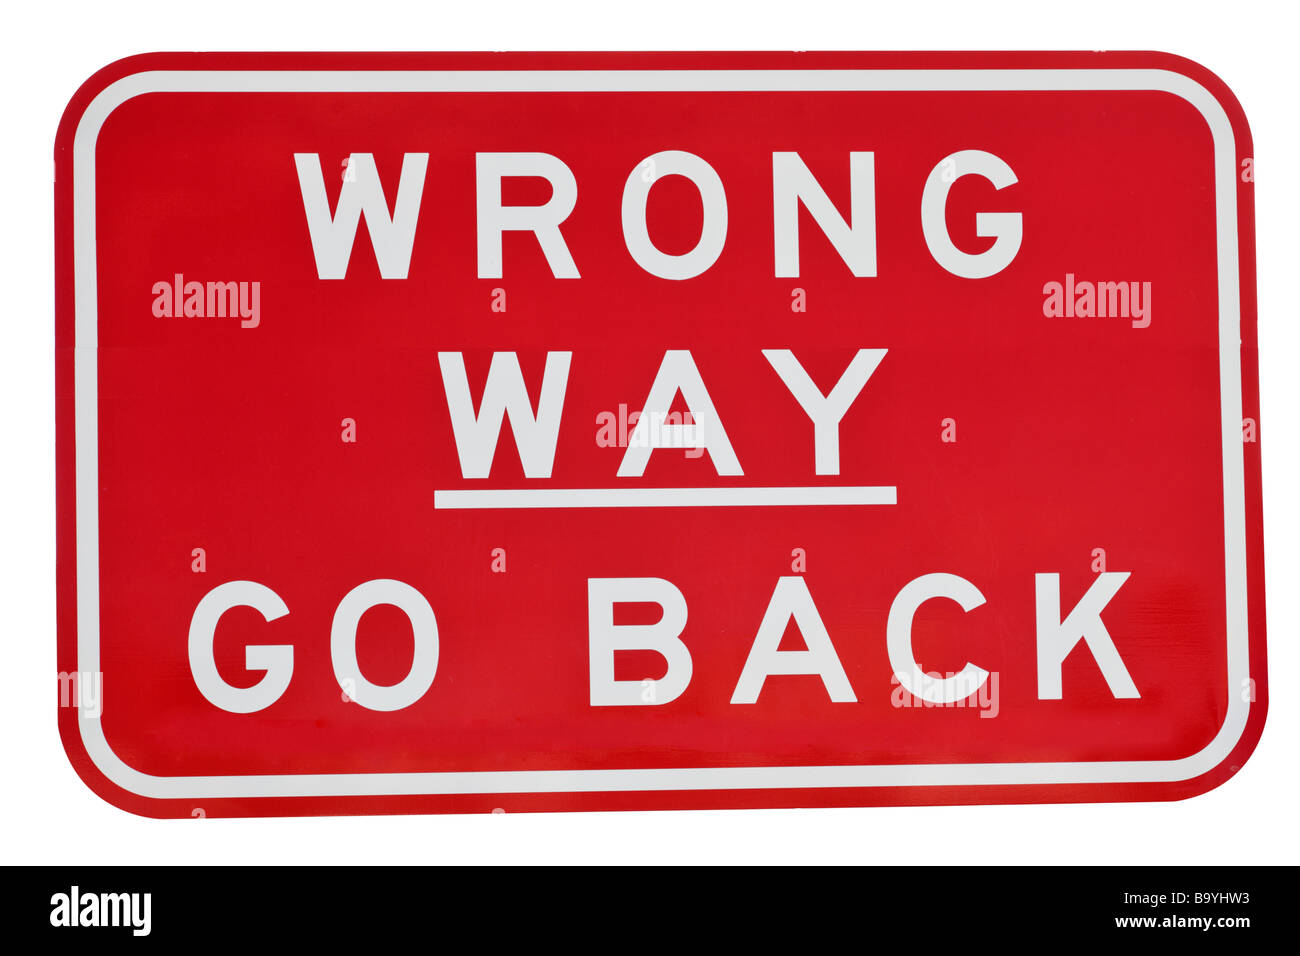 Street or road sign detailing a wrong way road - Stock Image